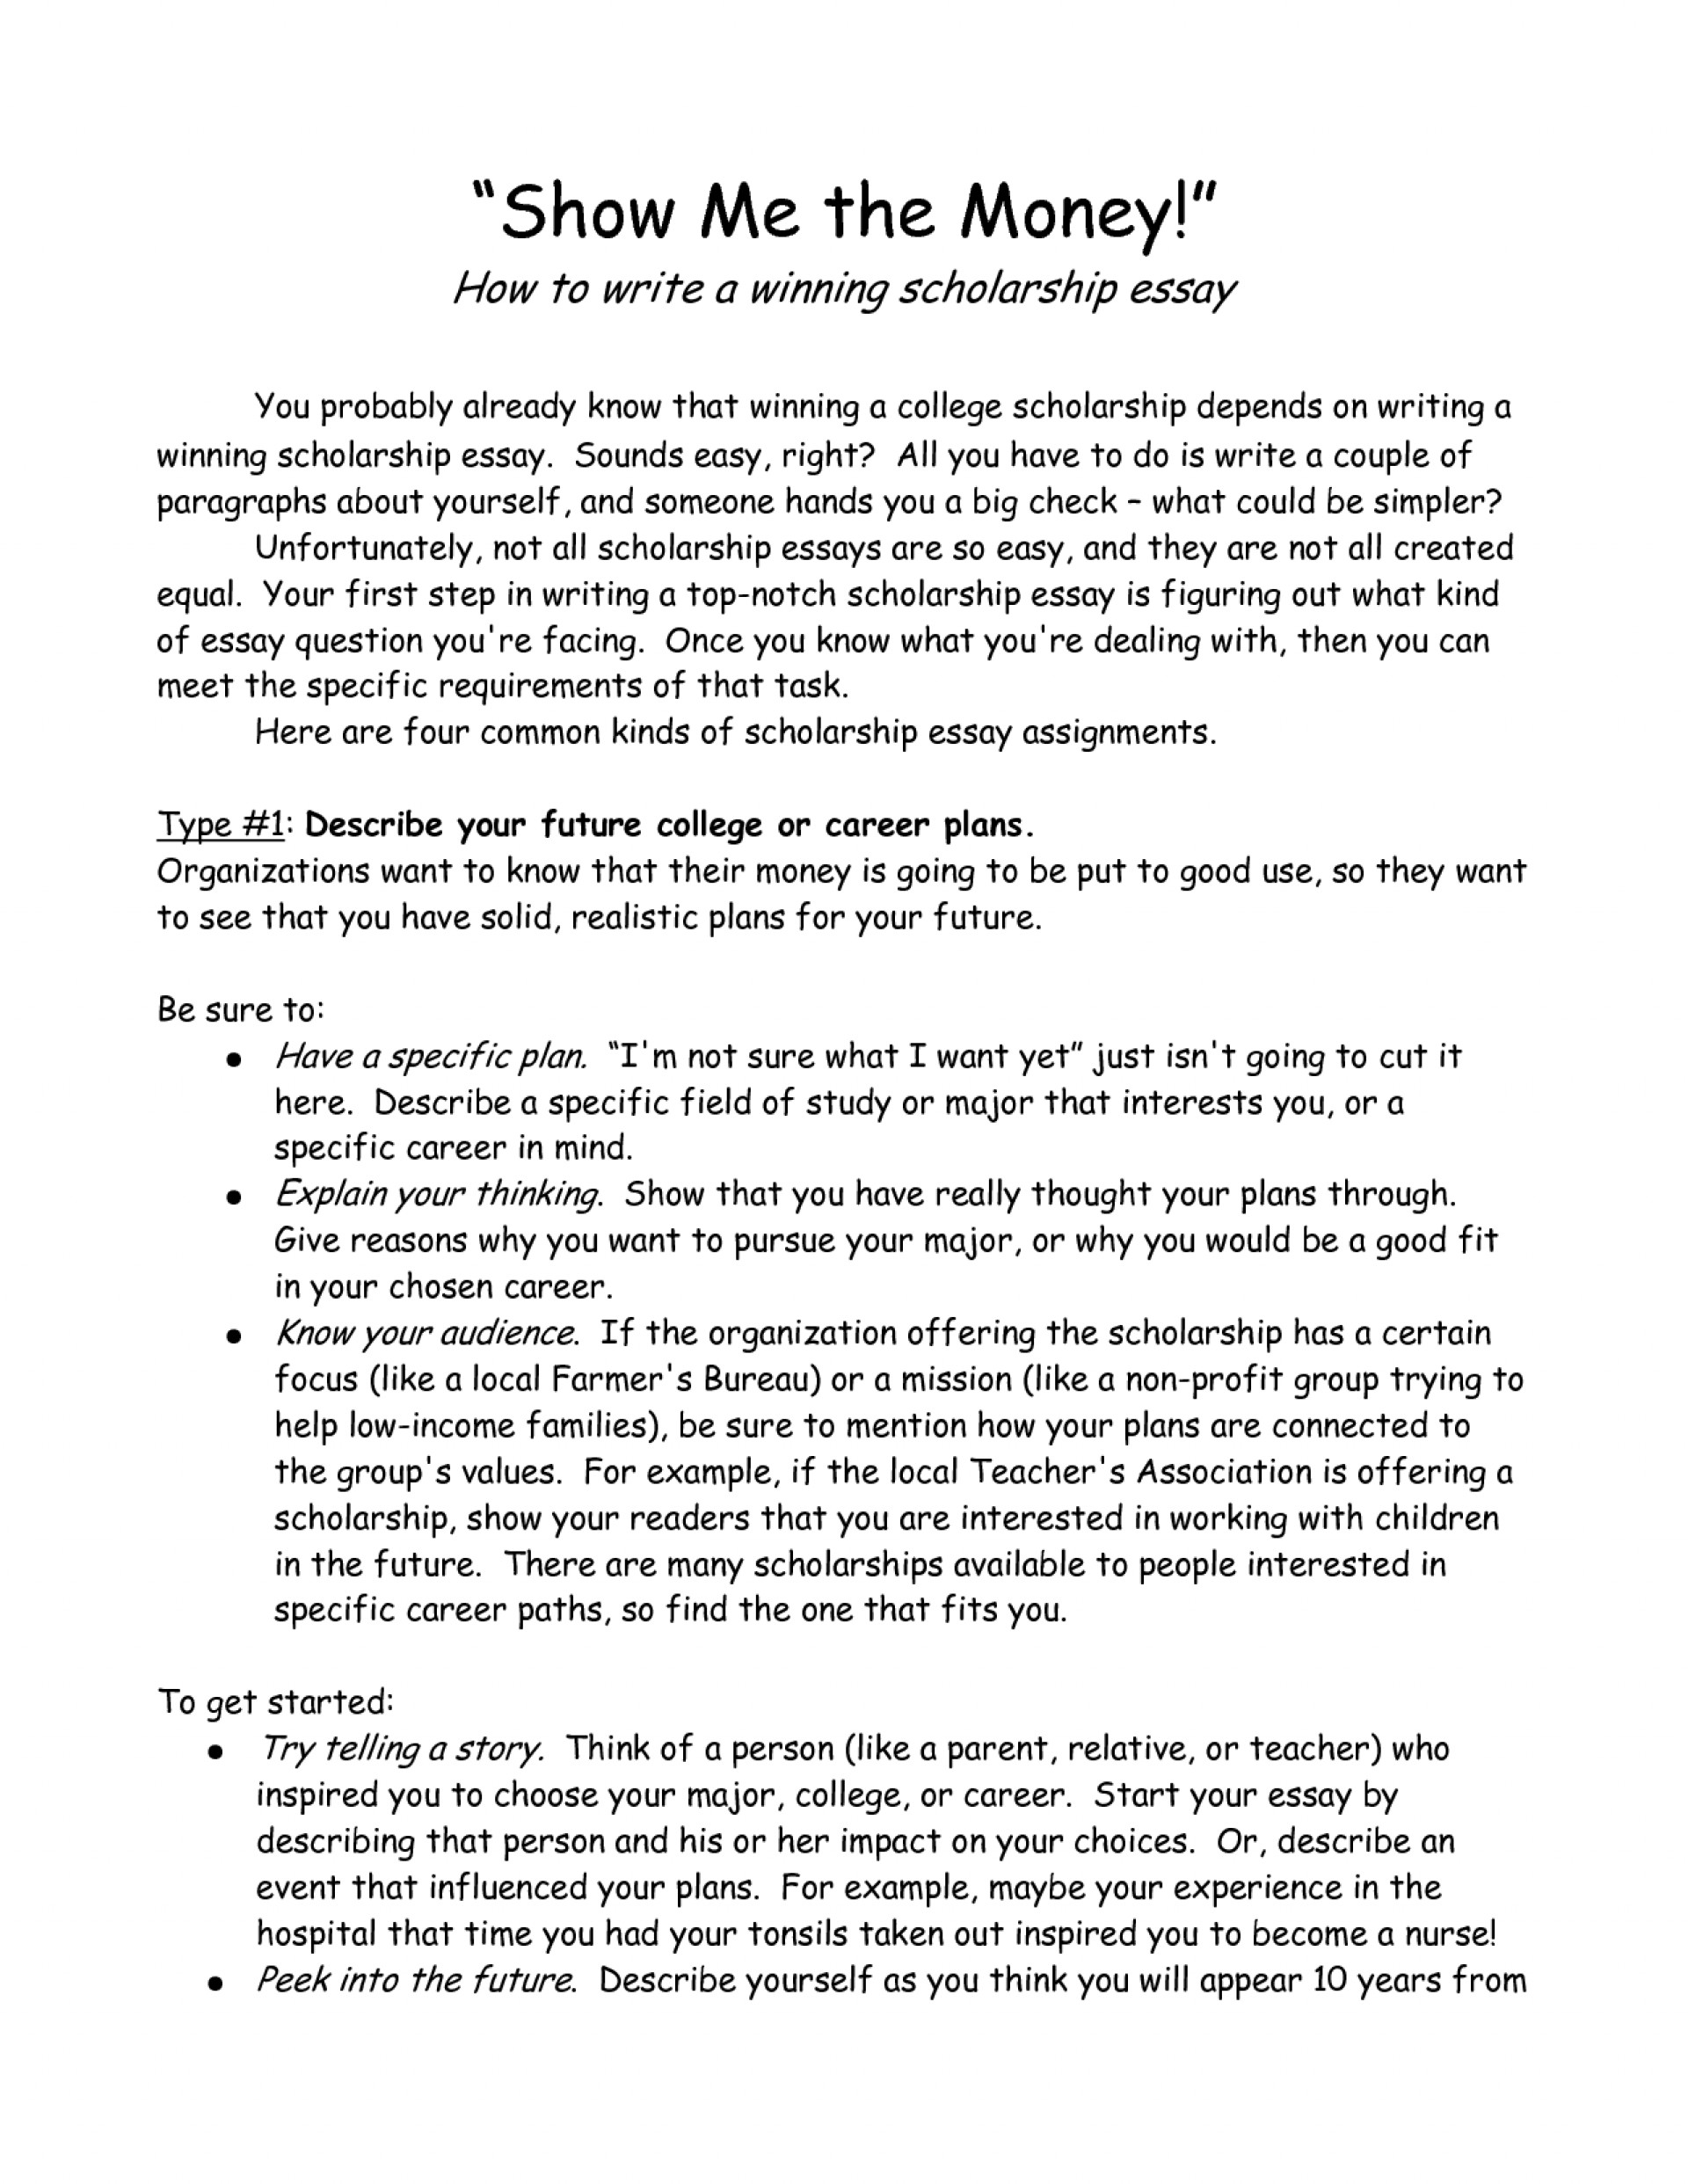 001 Sample Essay For Scholarship Ideas Of Write Enom Warb Also Writing Cover Letter Incredible Mara Personal Pdf 1920